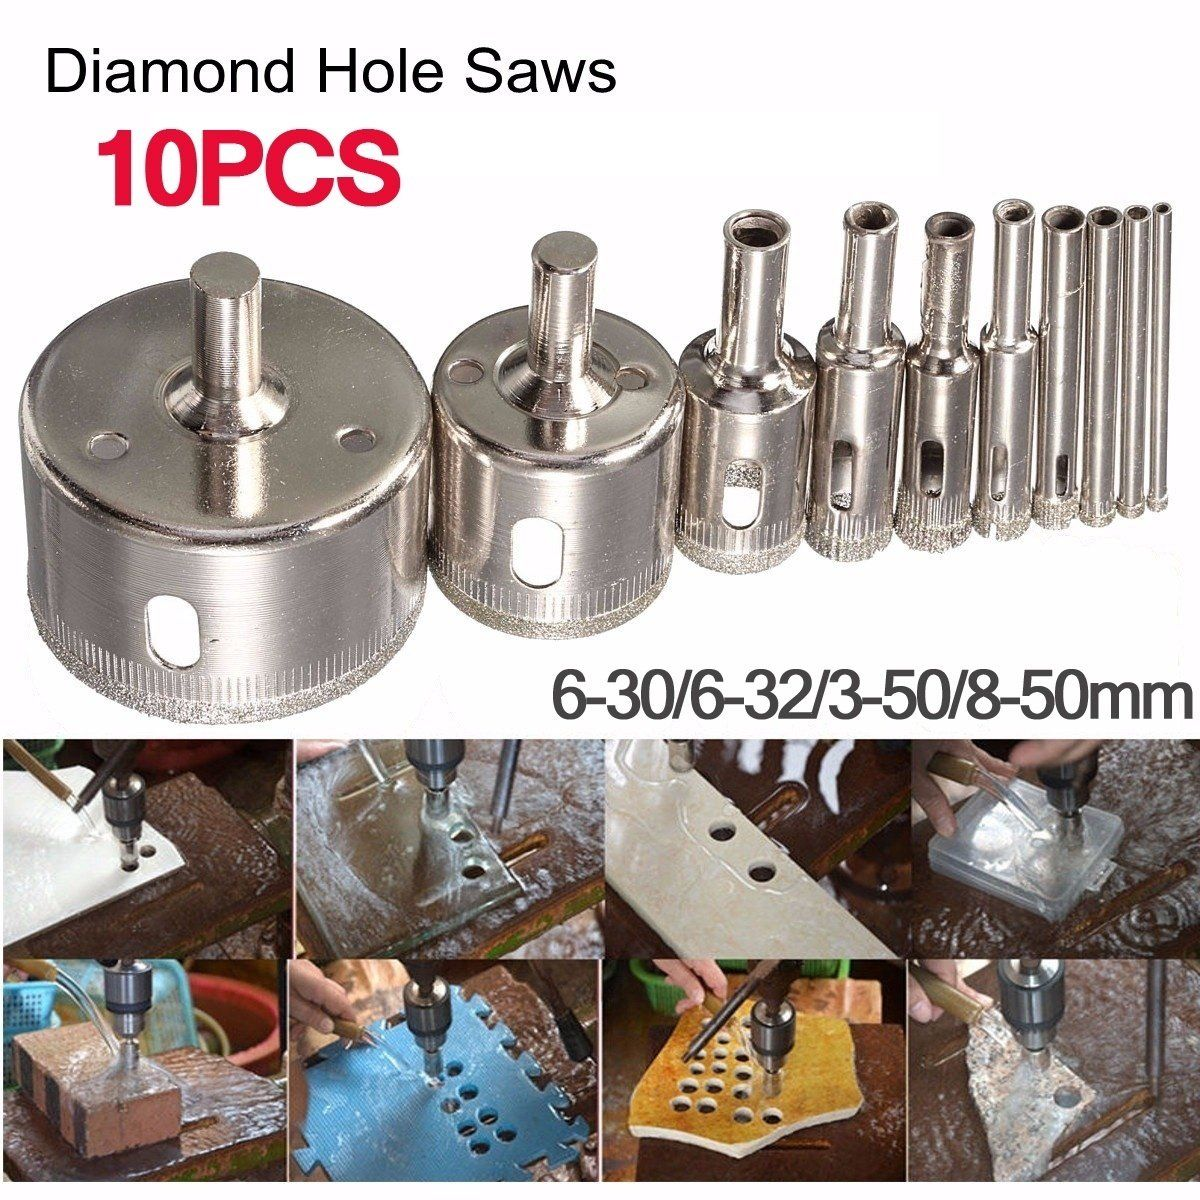 10Pcs Diamond Hole Saw Drill Bit Set